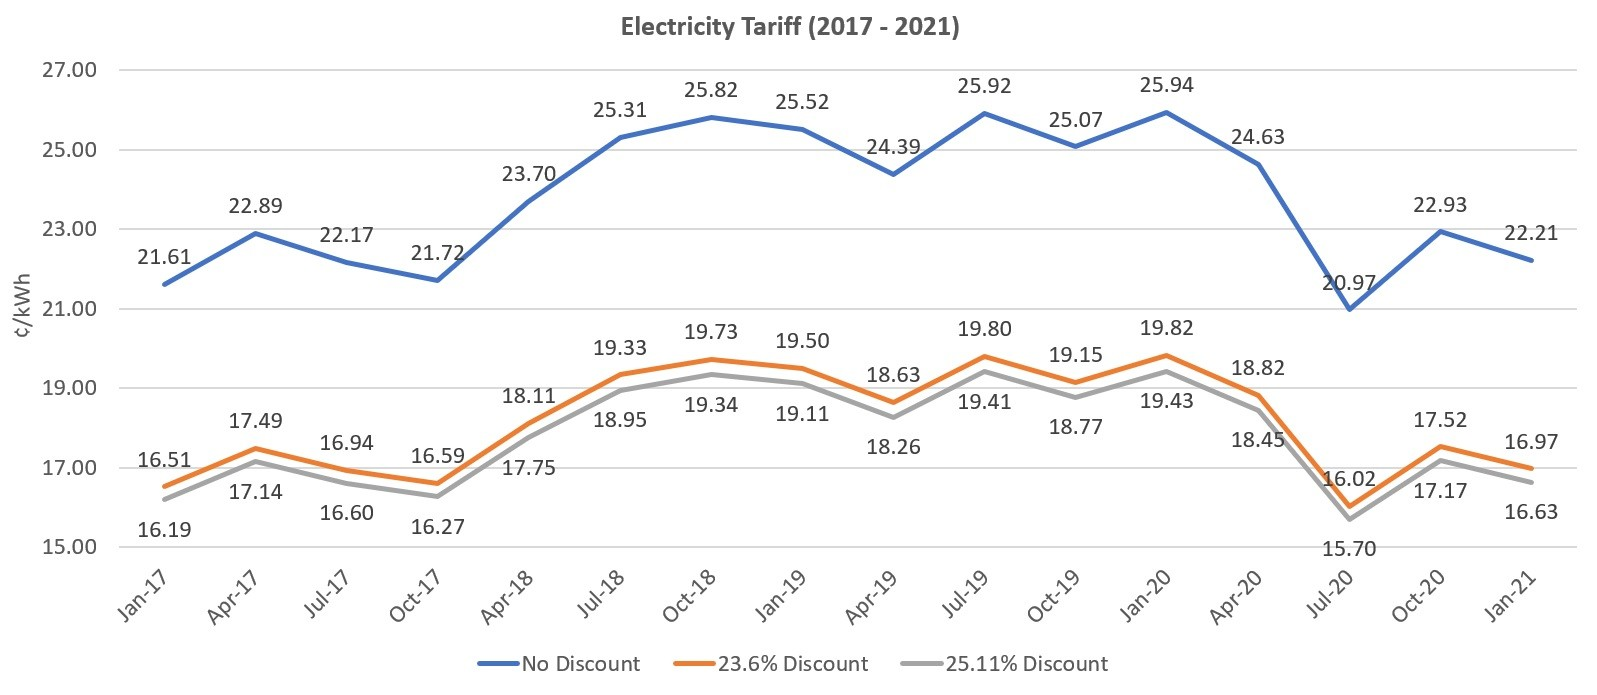 Electricity Tariff 2017 to 2021